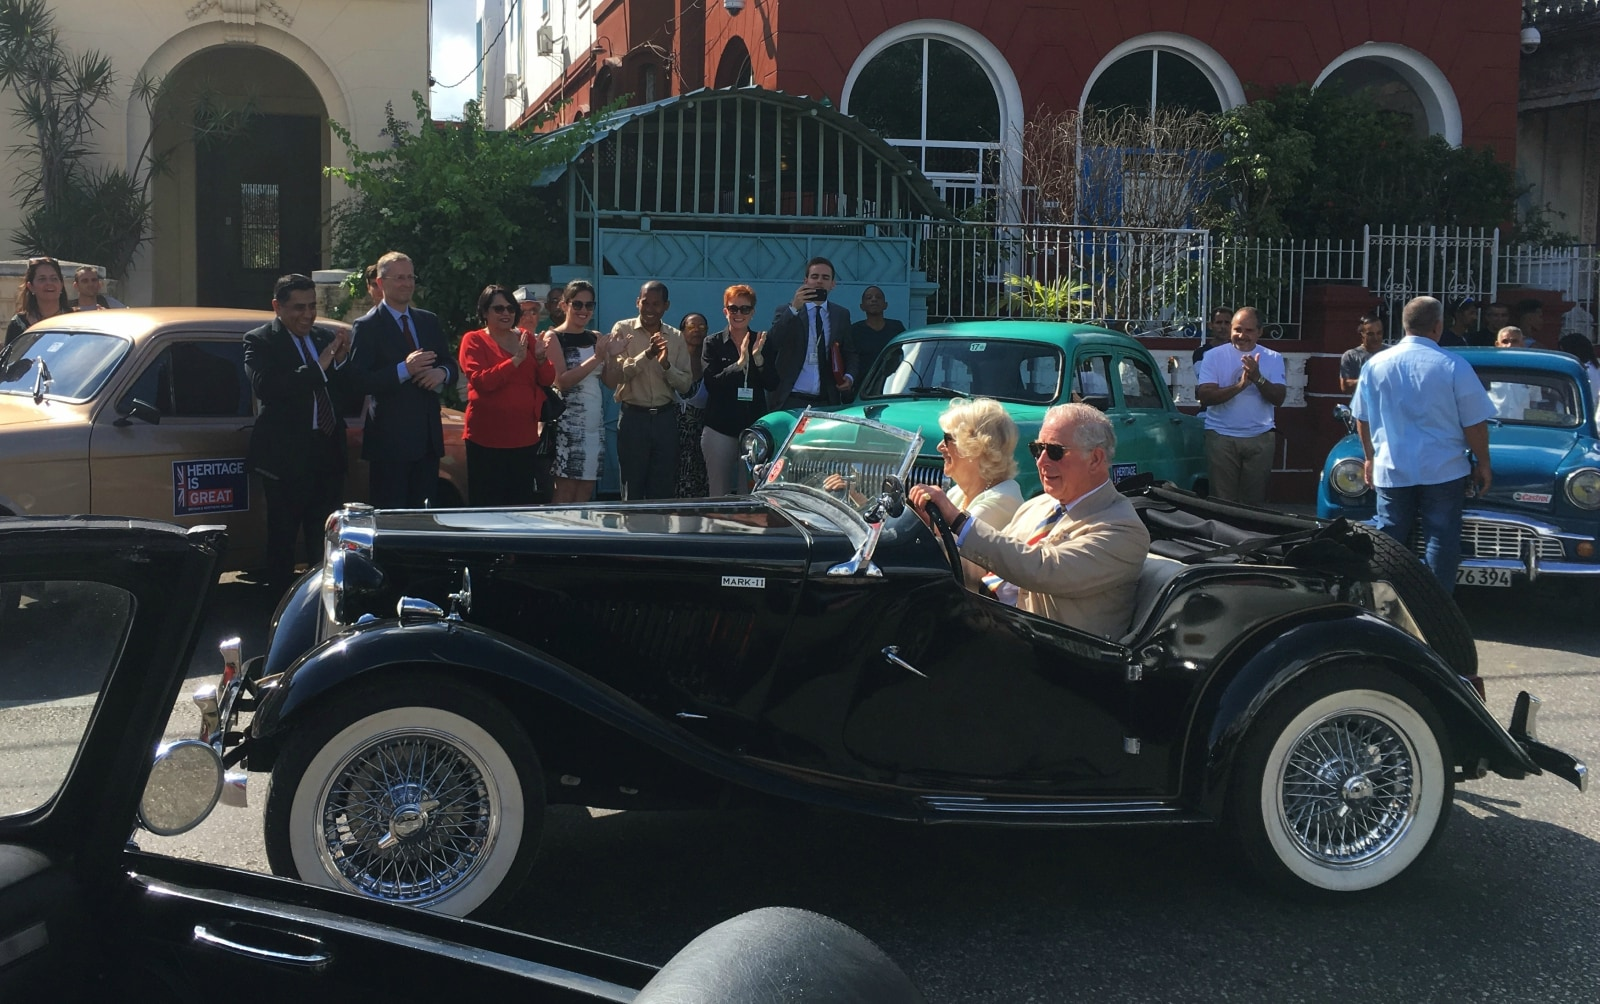 Britain's Prince Charles and Camilla, Duchess of Cornwall arrive at a British Classic Car event in Havana, Cuba, March 26, 2019. REUTERS/Sarah Marsh